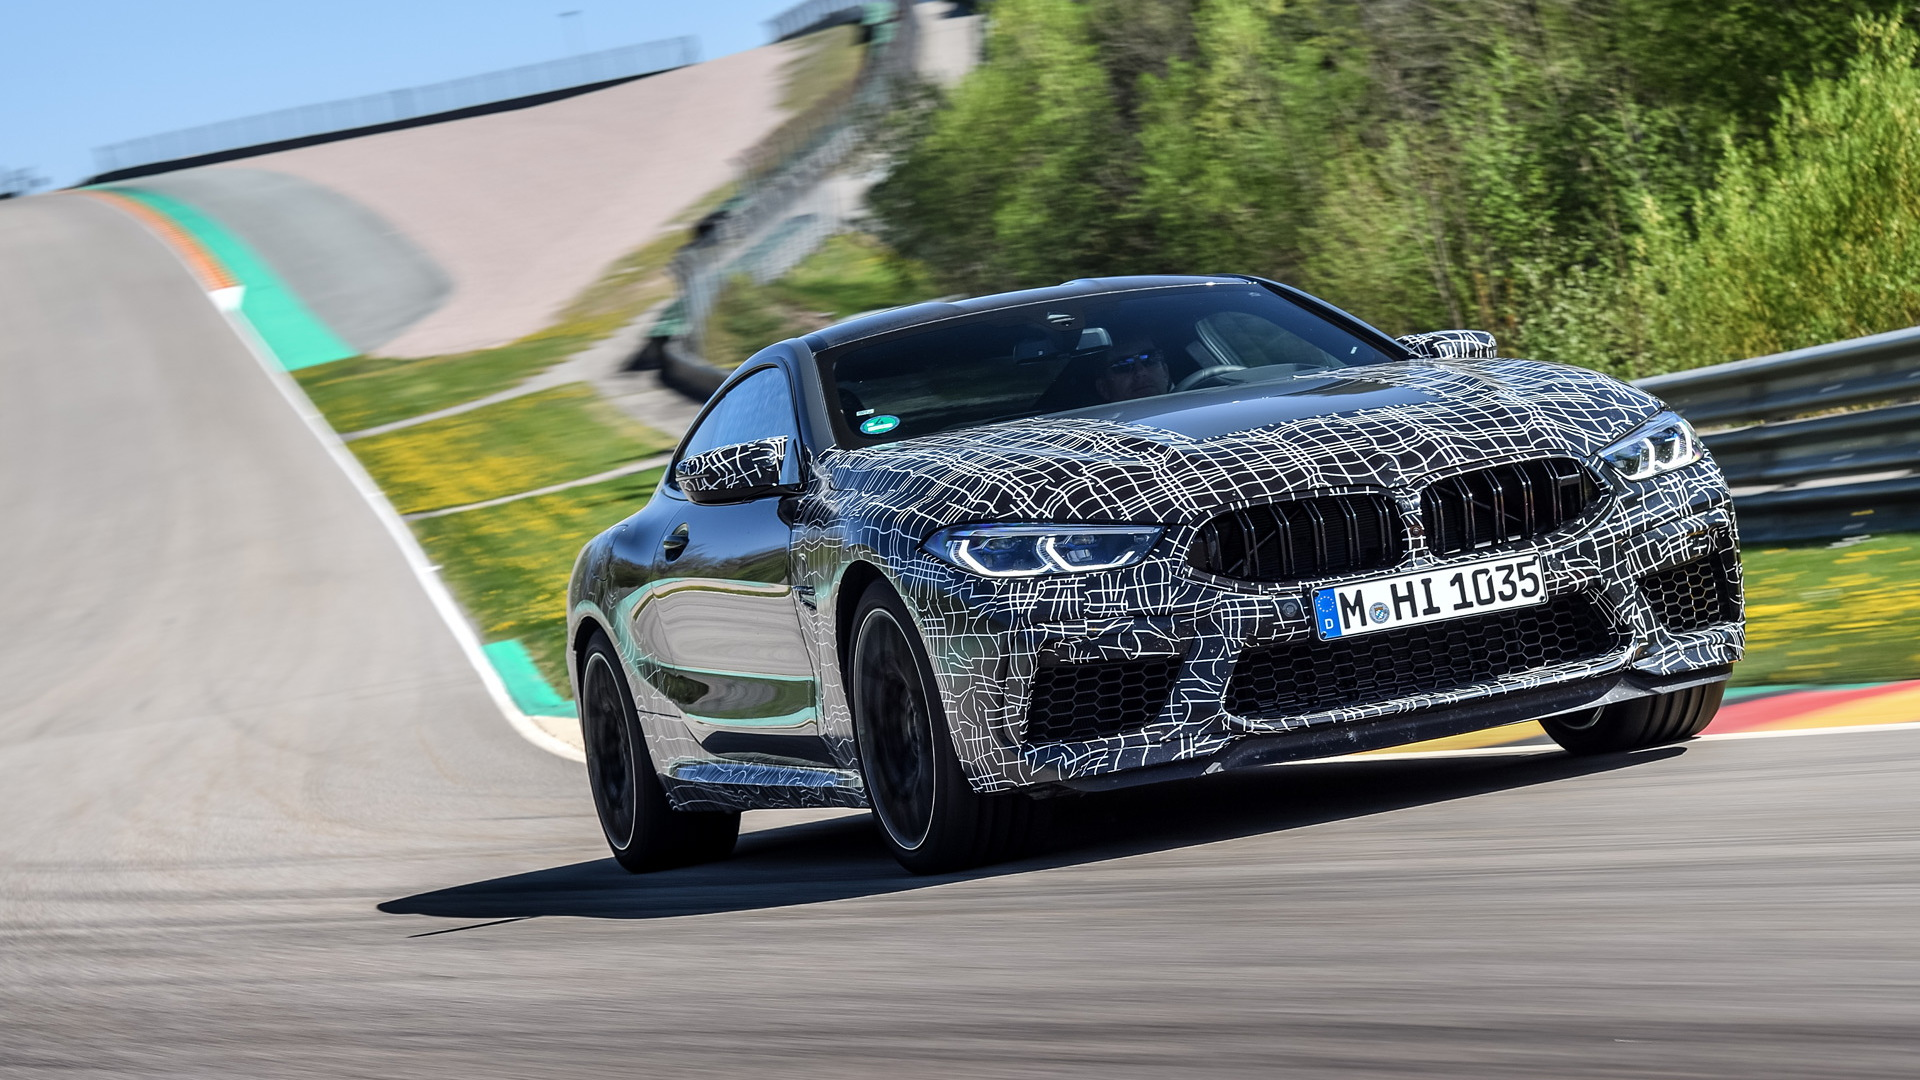 BMW M8 confirmed with new adjustable brake tech